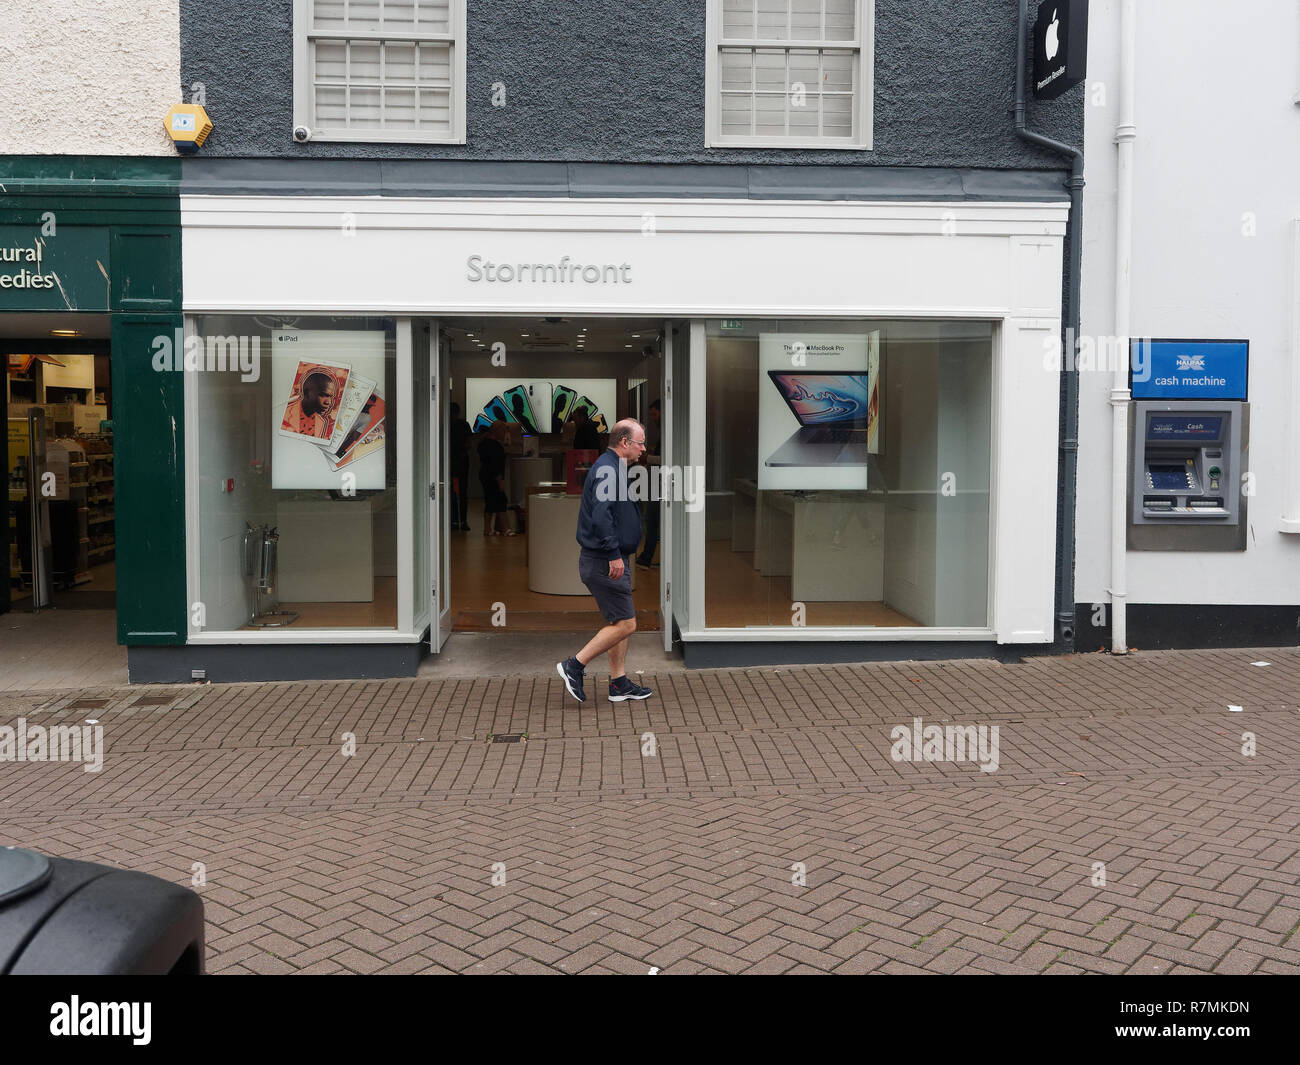 High Street Brands and shoppers Truro Cornwall, 2018  Robert Taylor/Alamy Live News. Truro, Cornwall, UK. - Stock Image